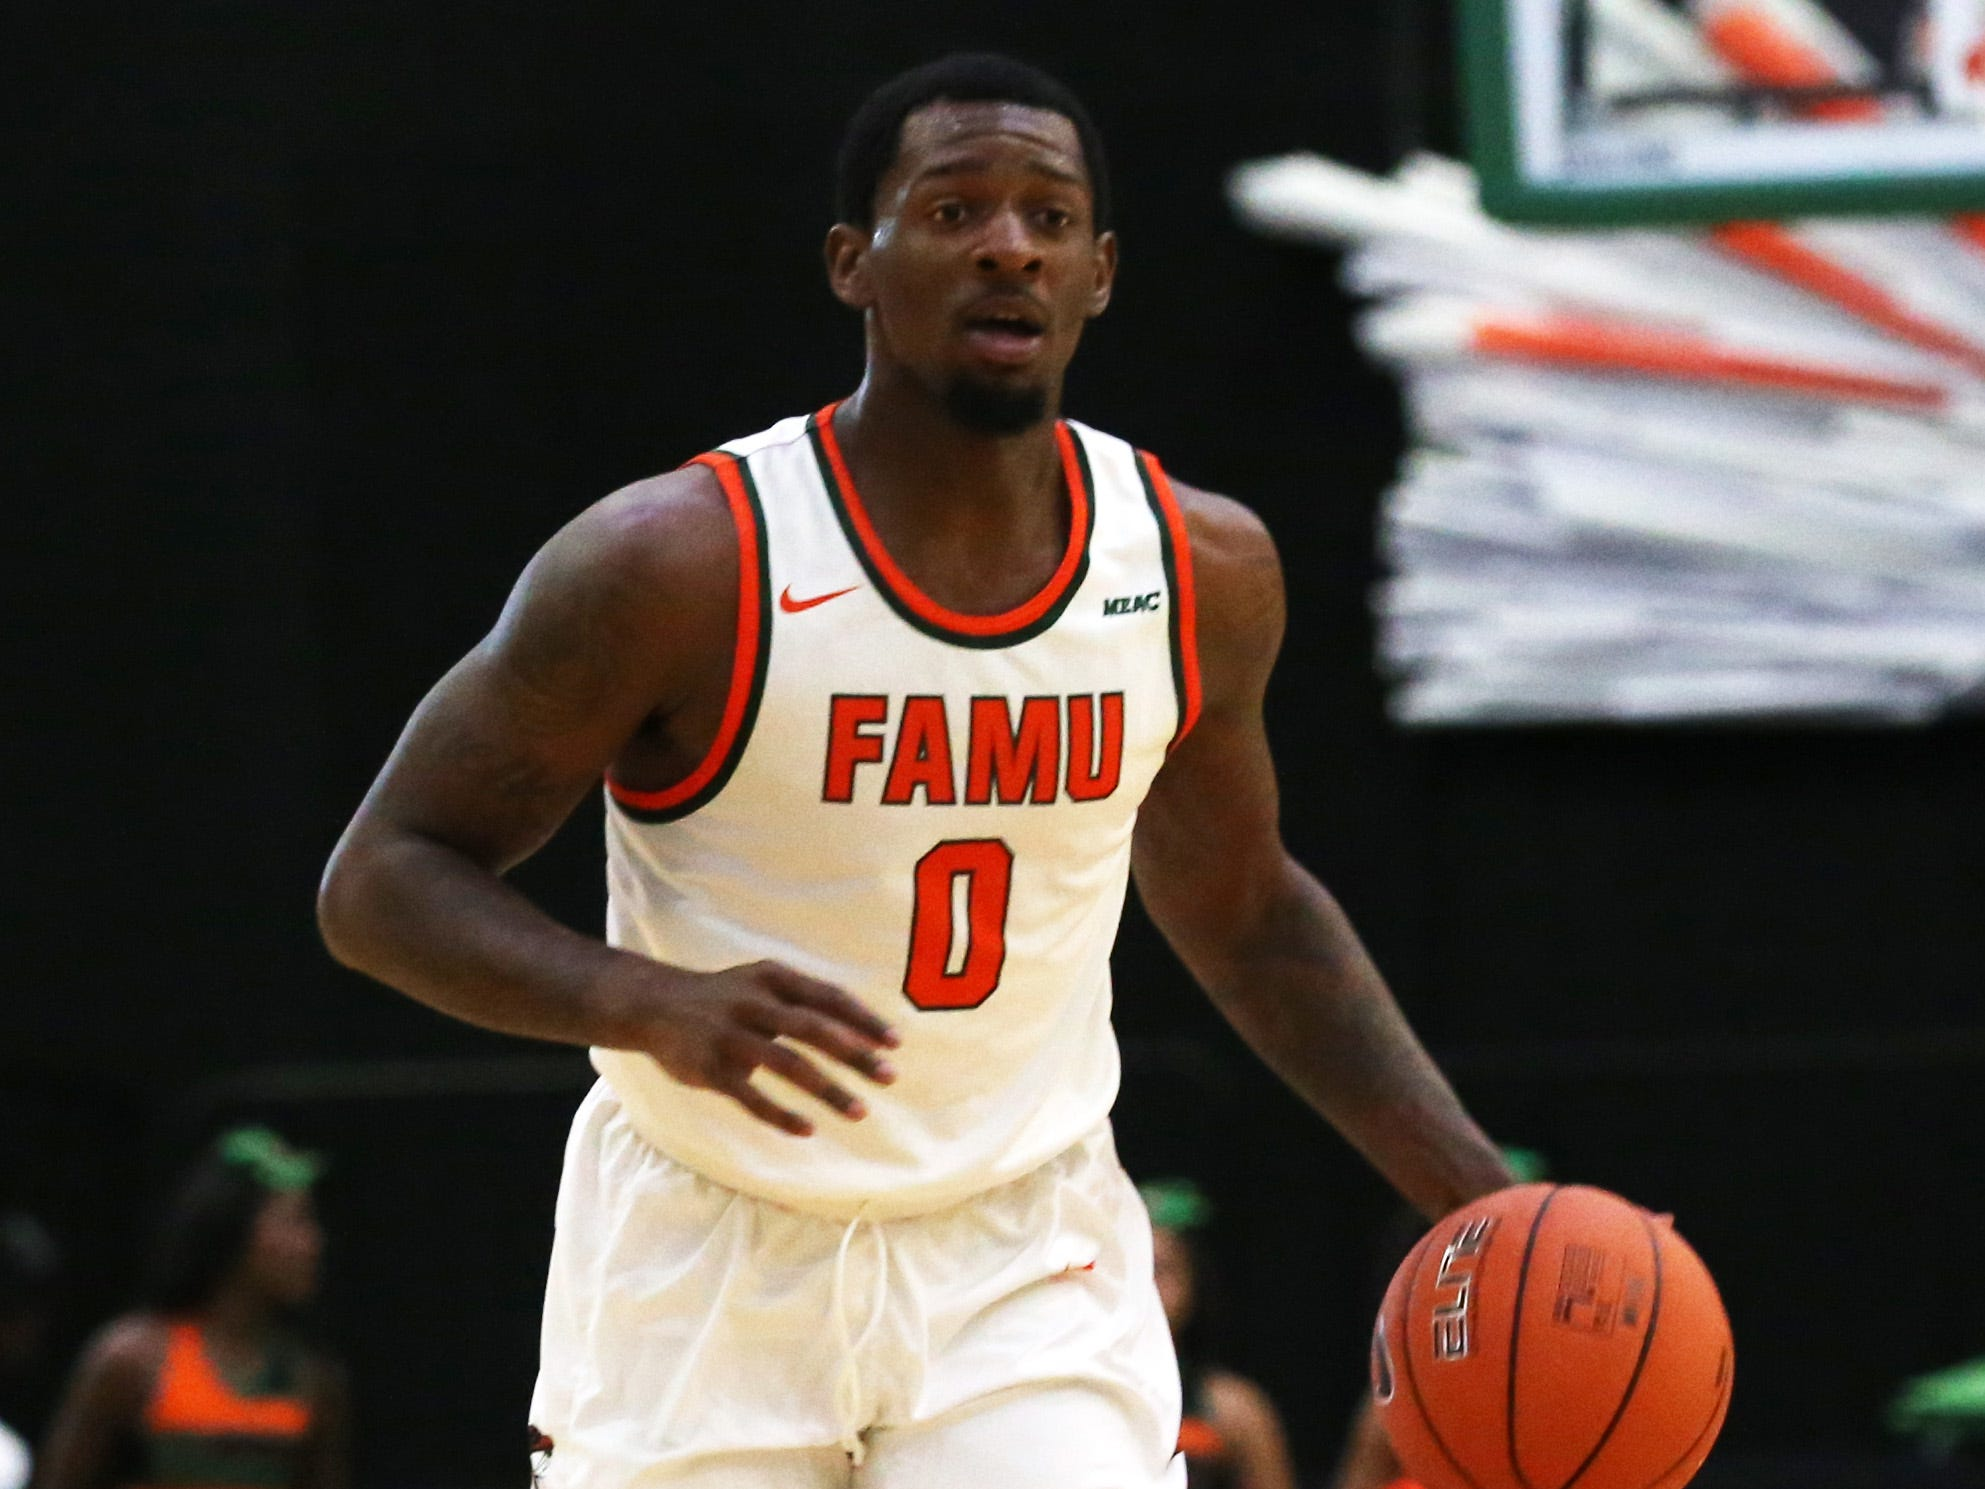 Florida A&M Rattlers forward Tracy Hector Jr. (0) drives the ball down the court as the FAMU Rattlers take on the Tuskegee Golden Tigers in their first home game of the season in the Lawson Center, Saturday, Nov. 10, 2018.